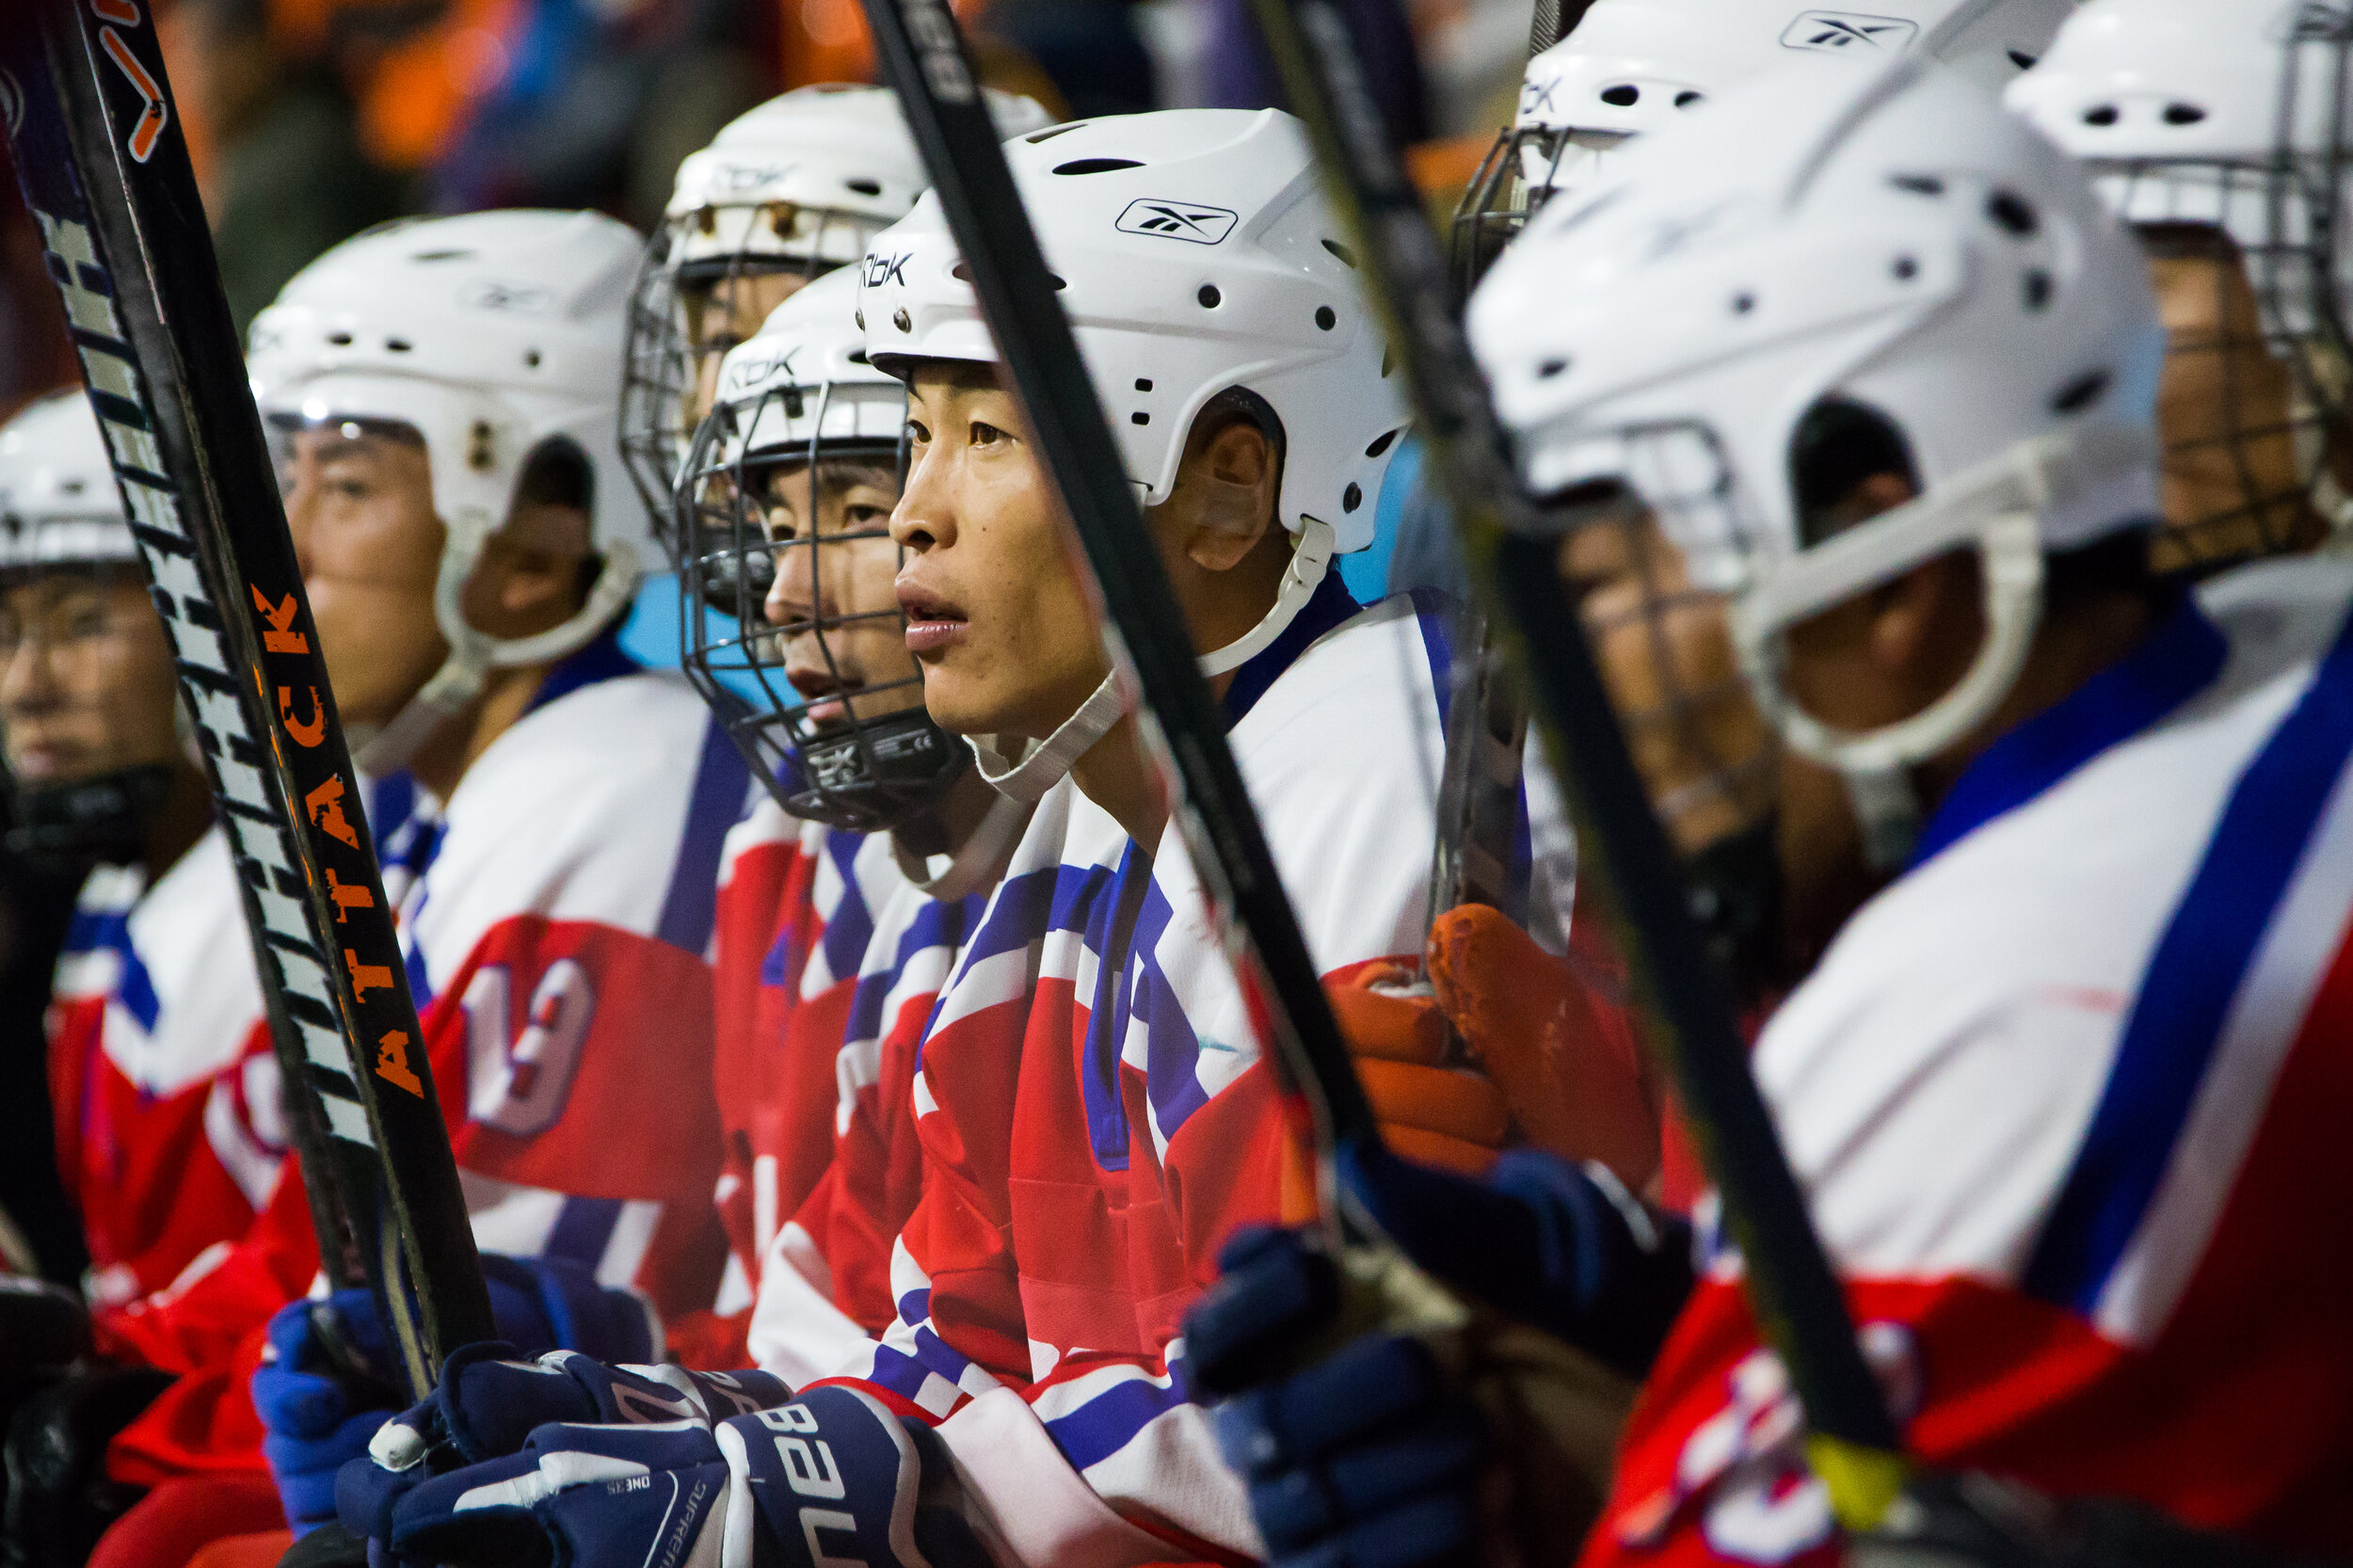 pyongyang-cup-hockey-in-north-korea-dprk-ice-hockey.jpg